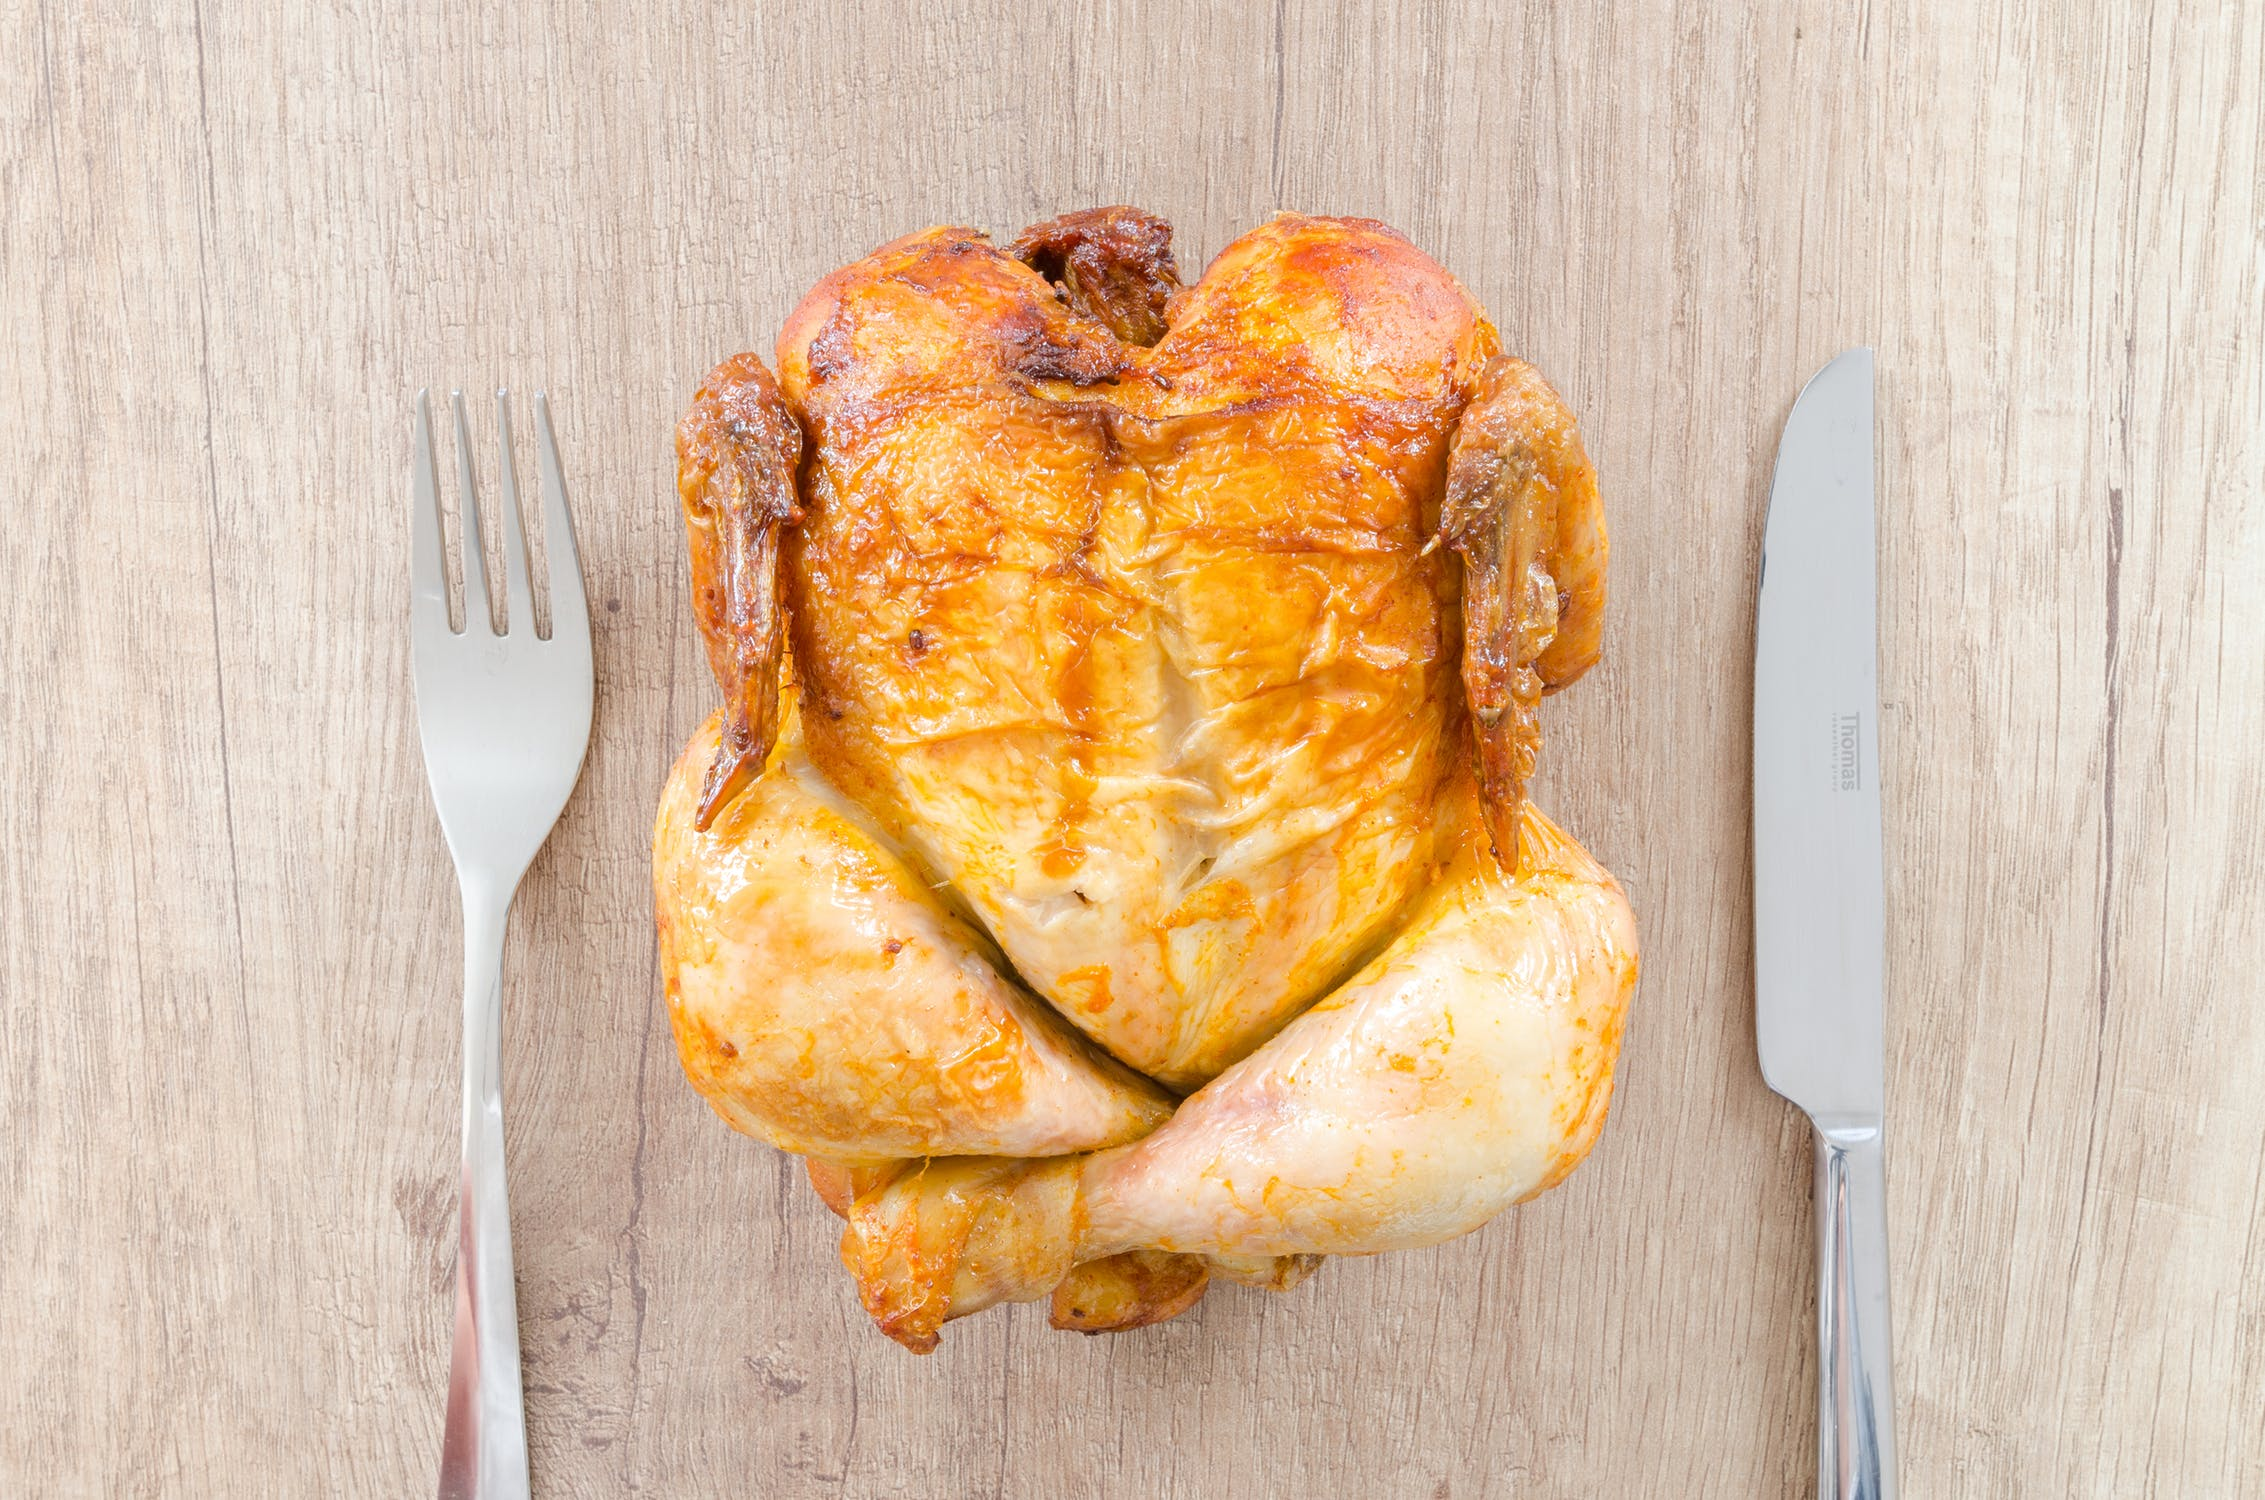 Roasted chicken hot out of the oven. Great for left overs too!